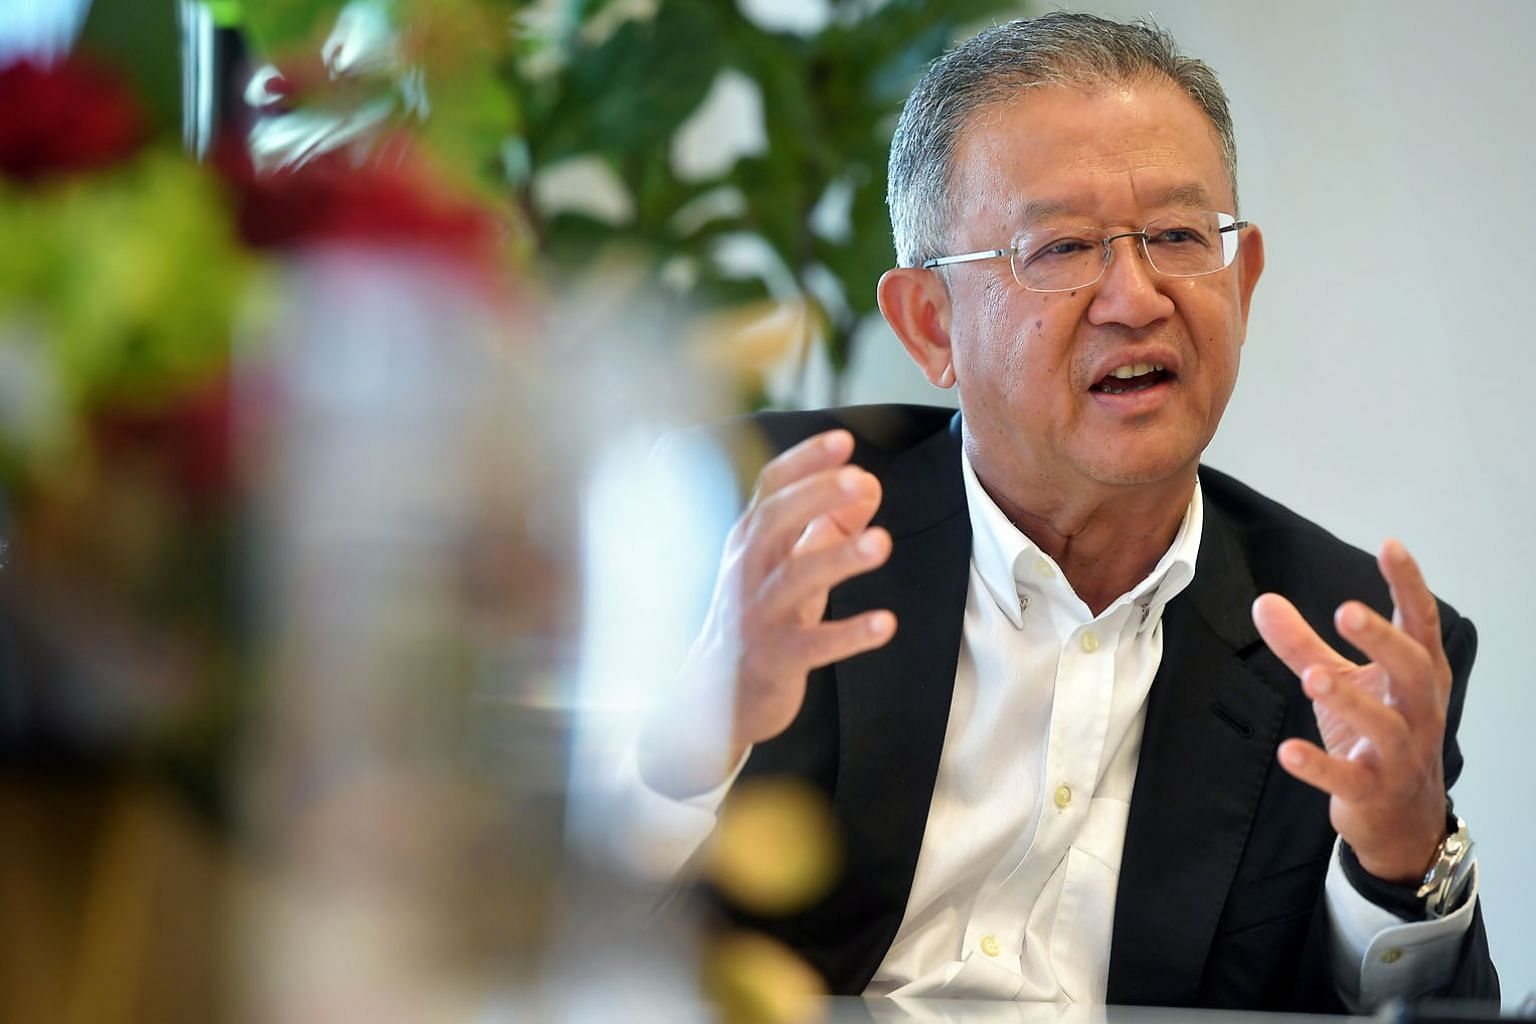 AIA group CEO and president Ng Keng Hooi, who has been in the industry for almost 40 years, says the firm has made huge investments in technology and its people to keep up with the times.